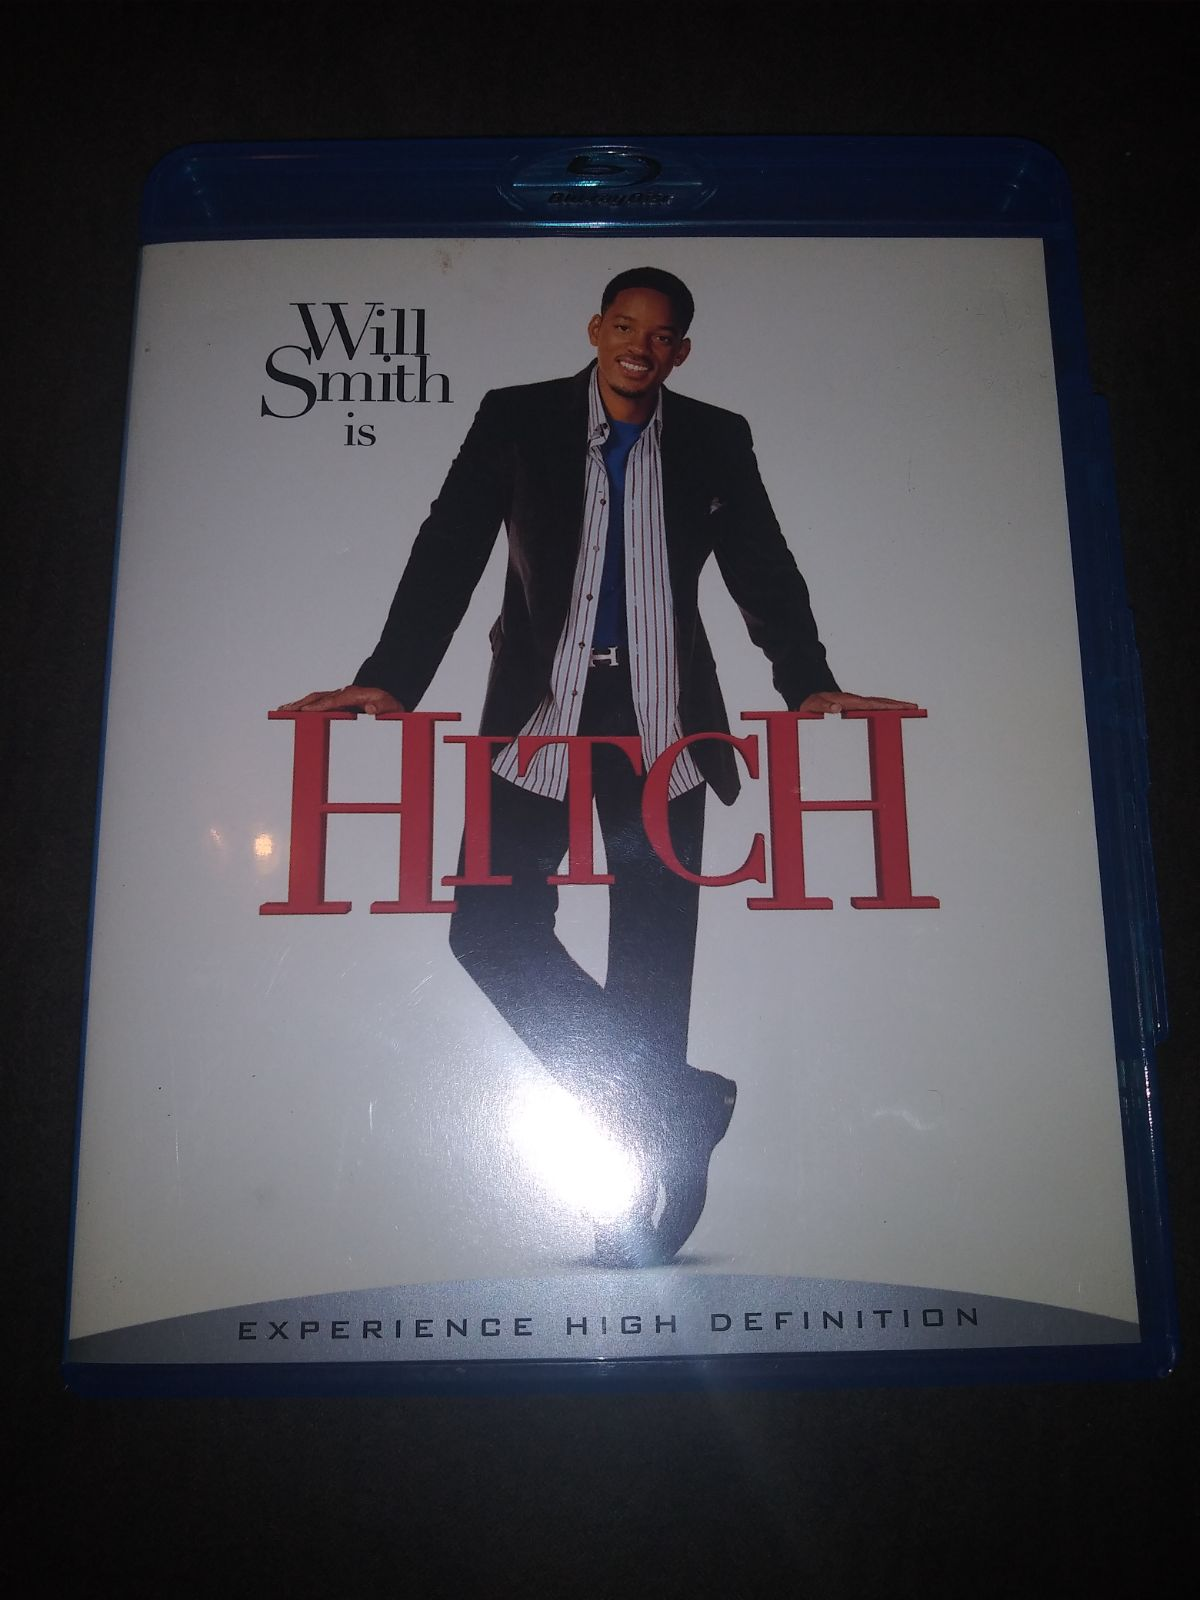 Hitch blue ray will smith